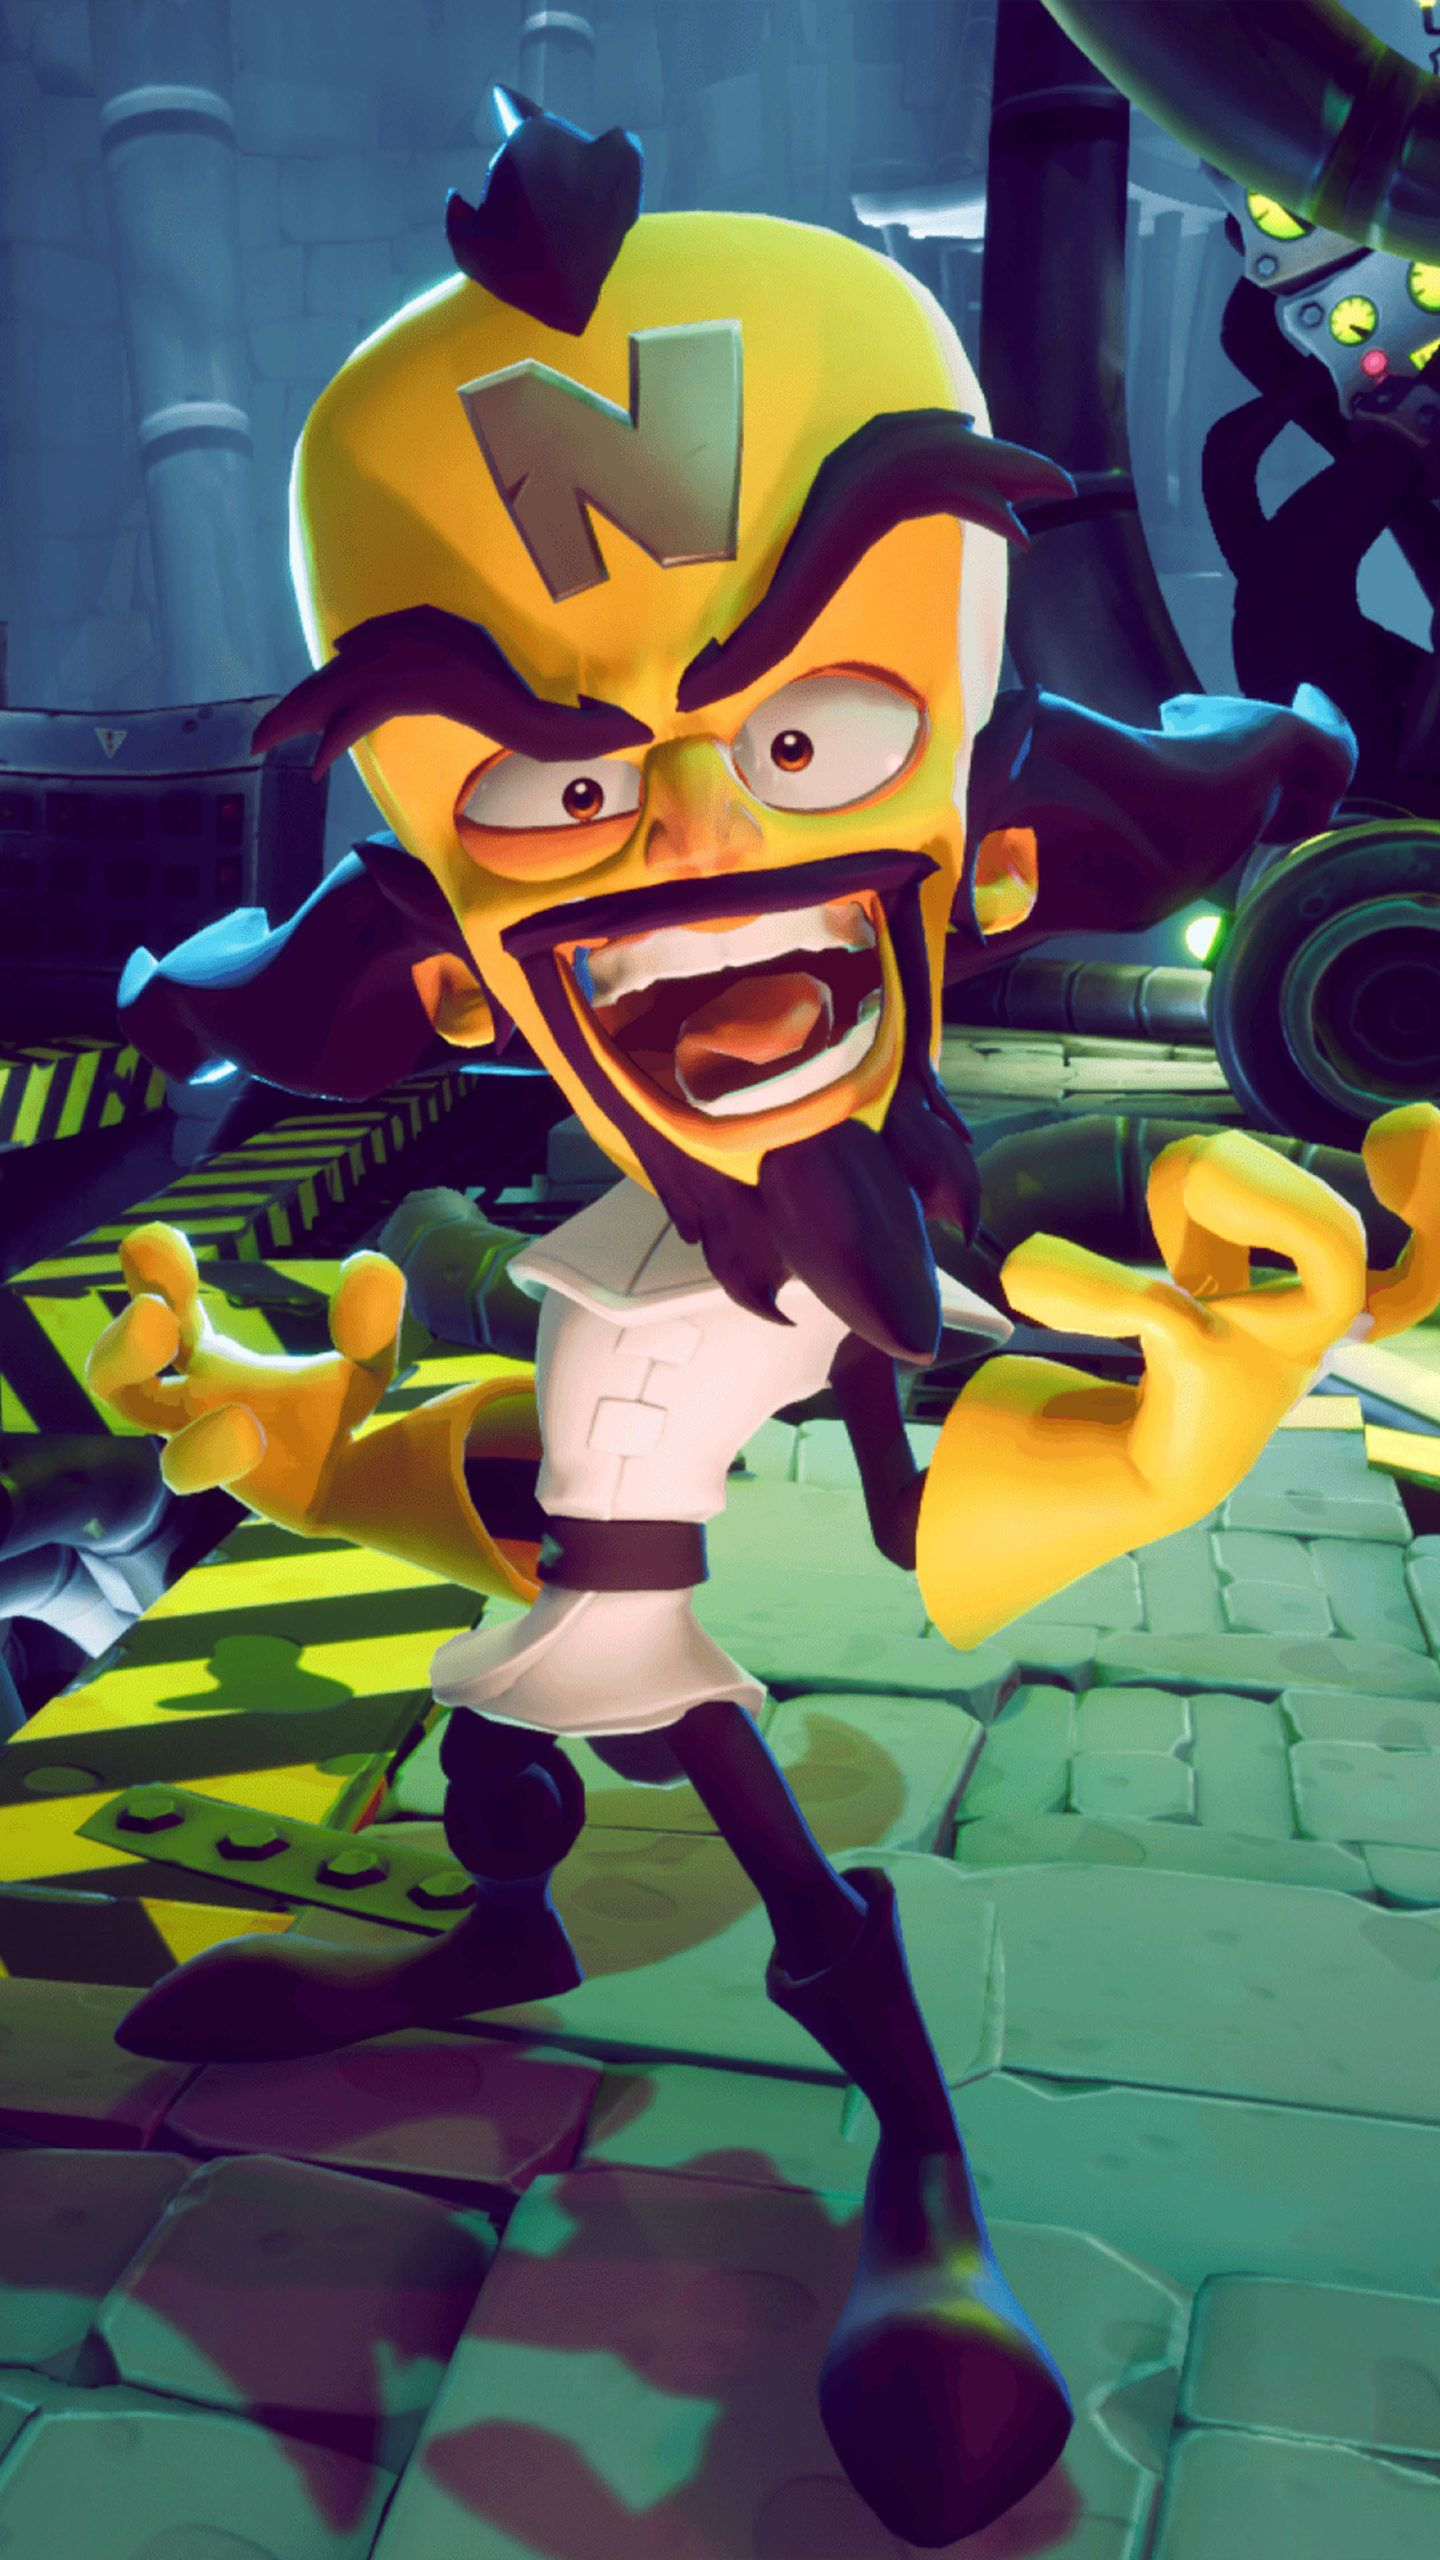 Doctor neo cortex in crash bandicoot 4 its about time 4k